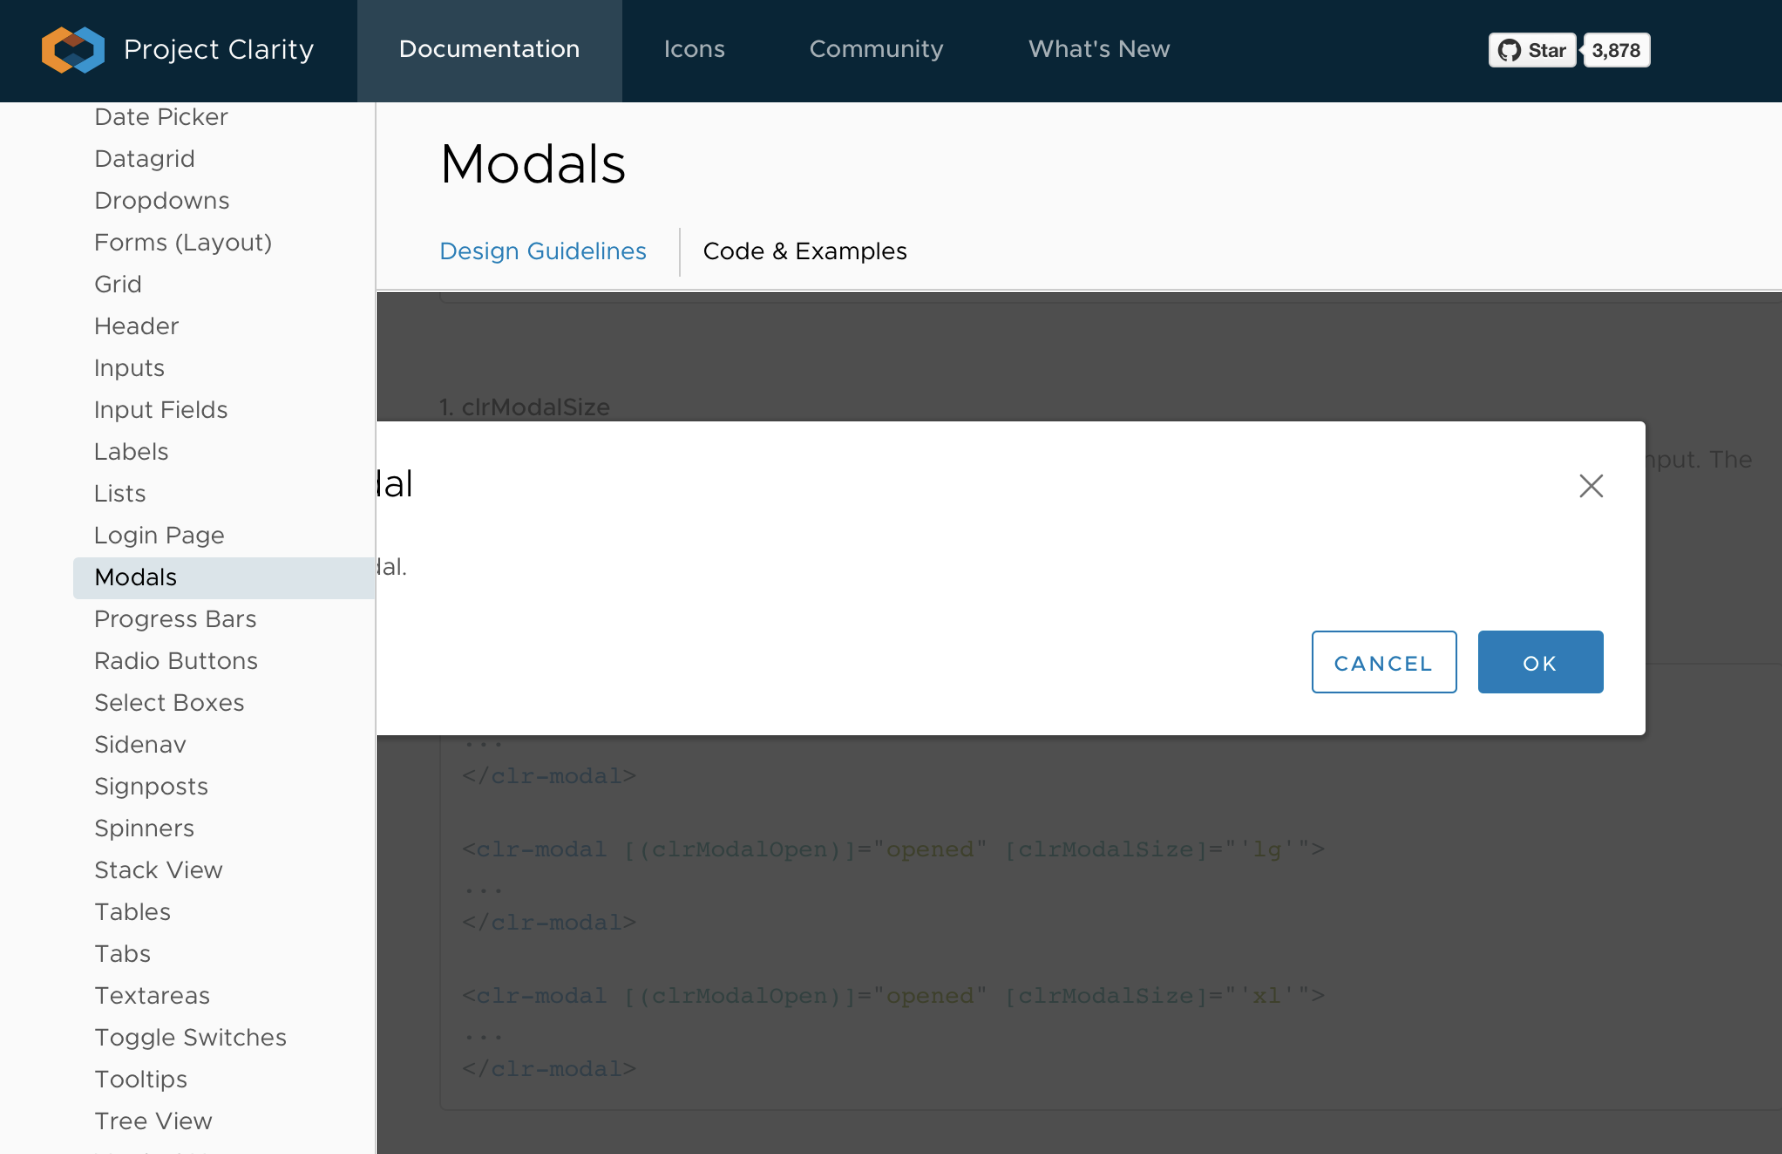 Modal cropped when inside StackView [Chrome] · Issue #251